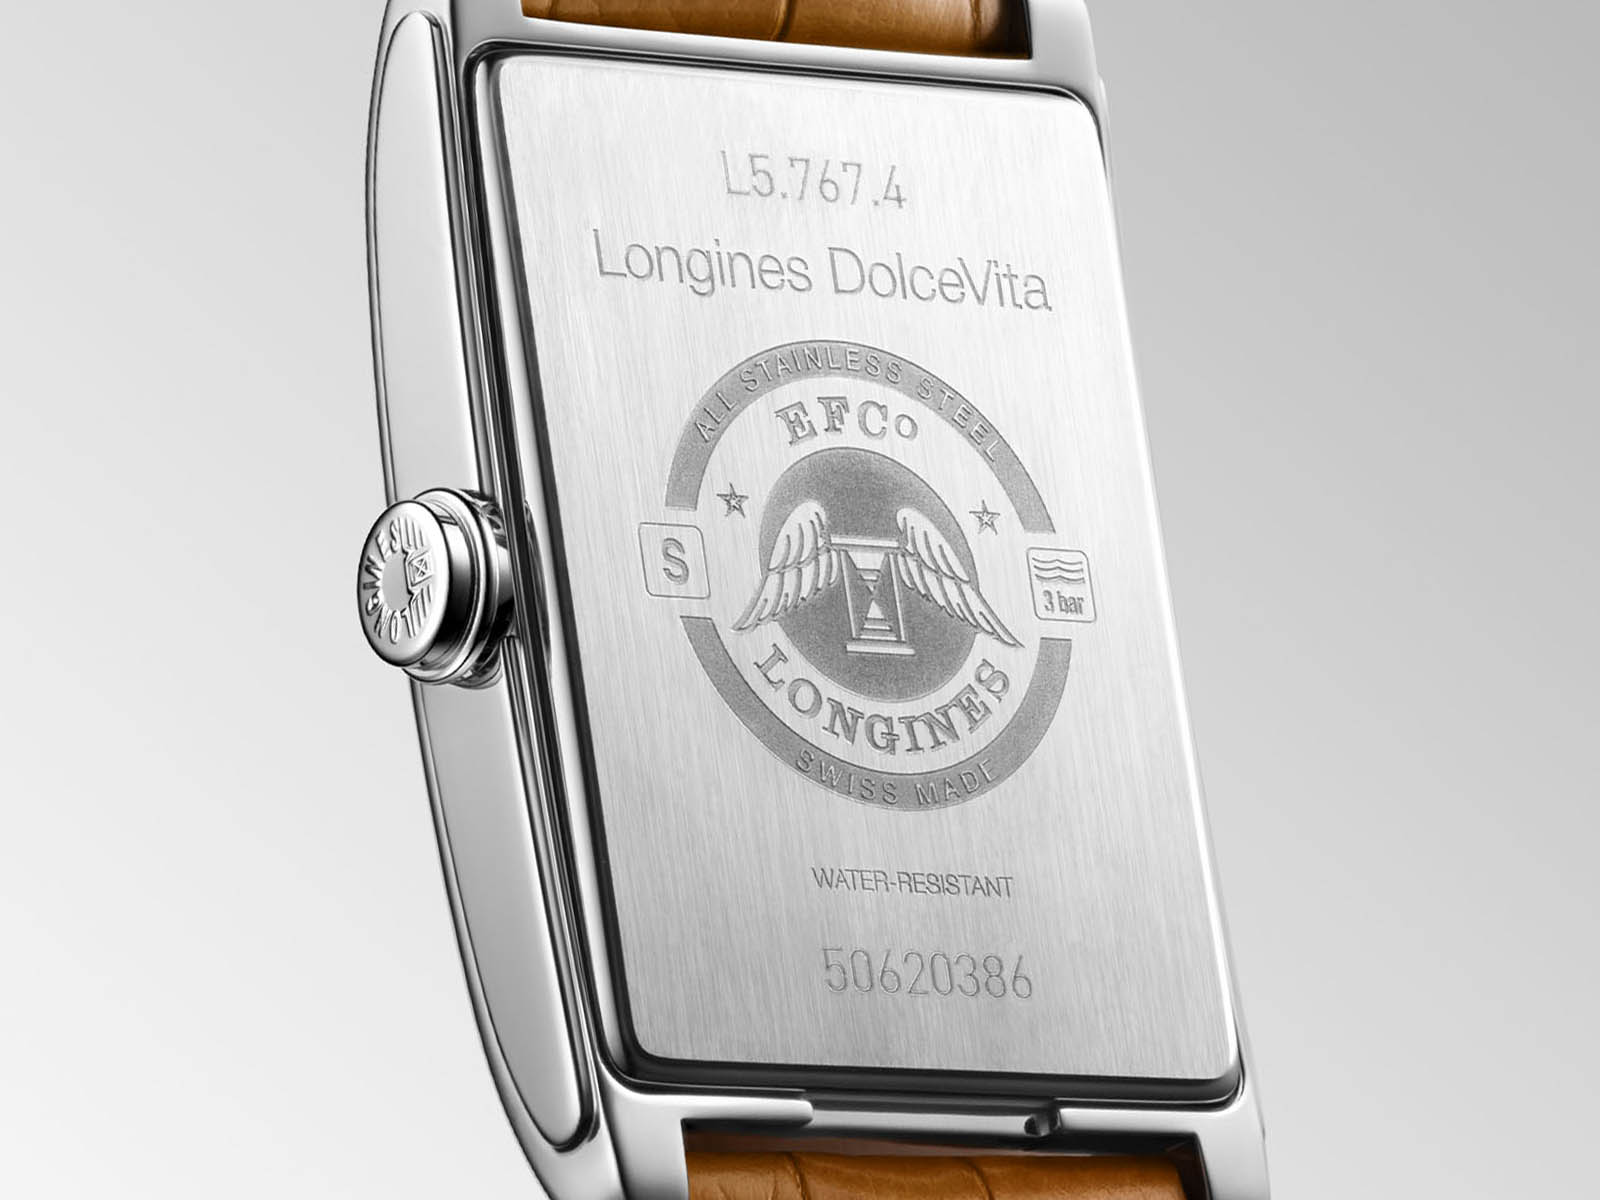 l5-767-4-73-0-longines-dolcevita-automatic-art-deco-sector-dial-3.jpg